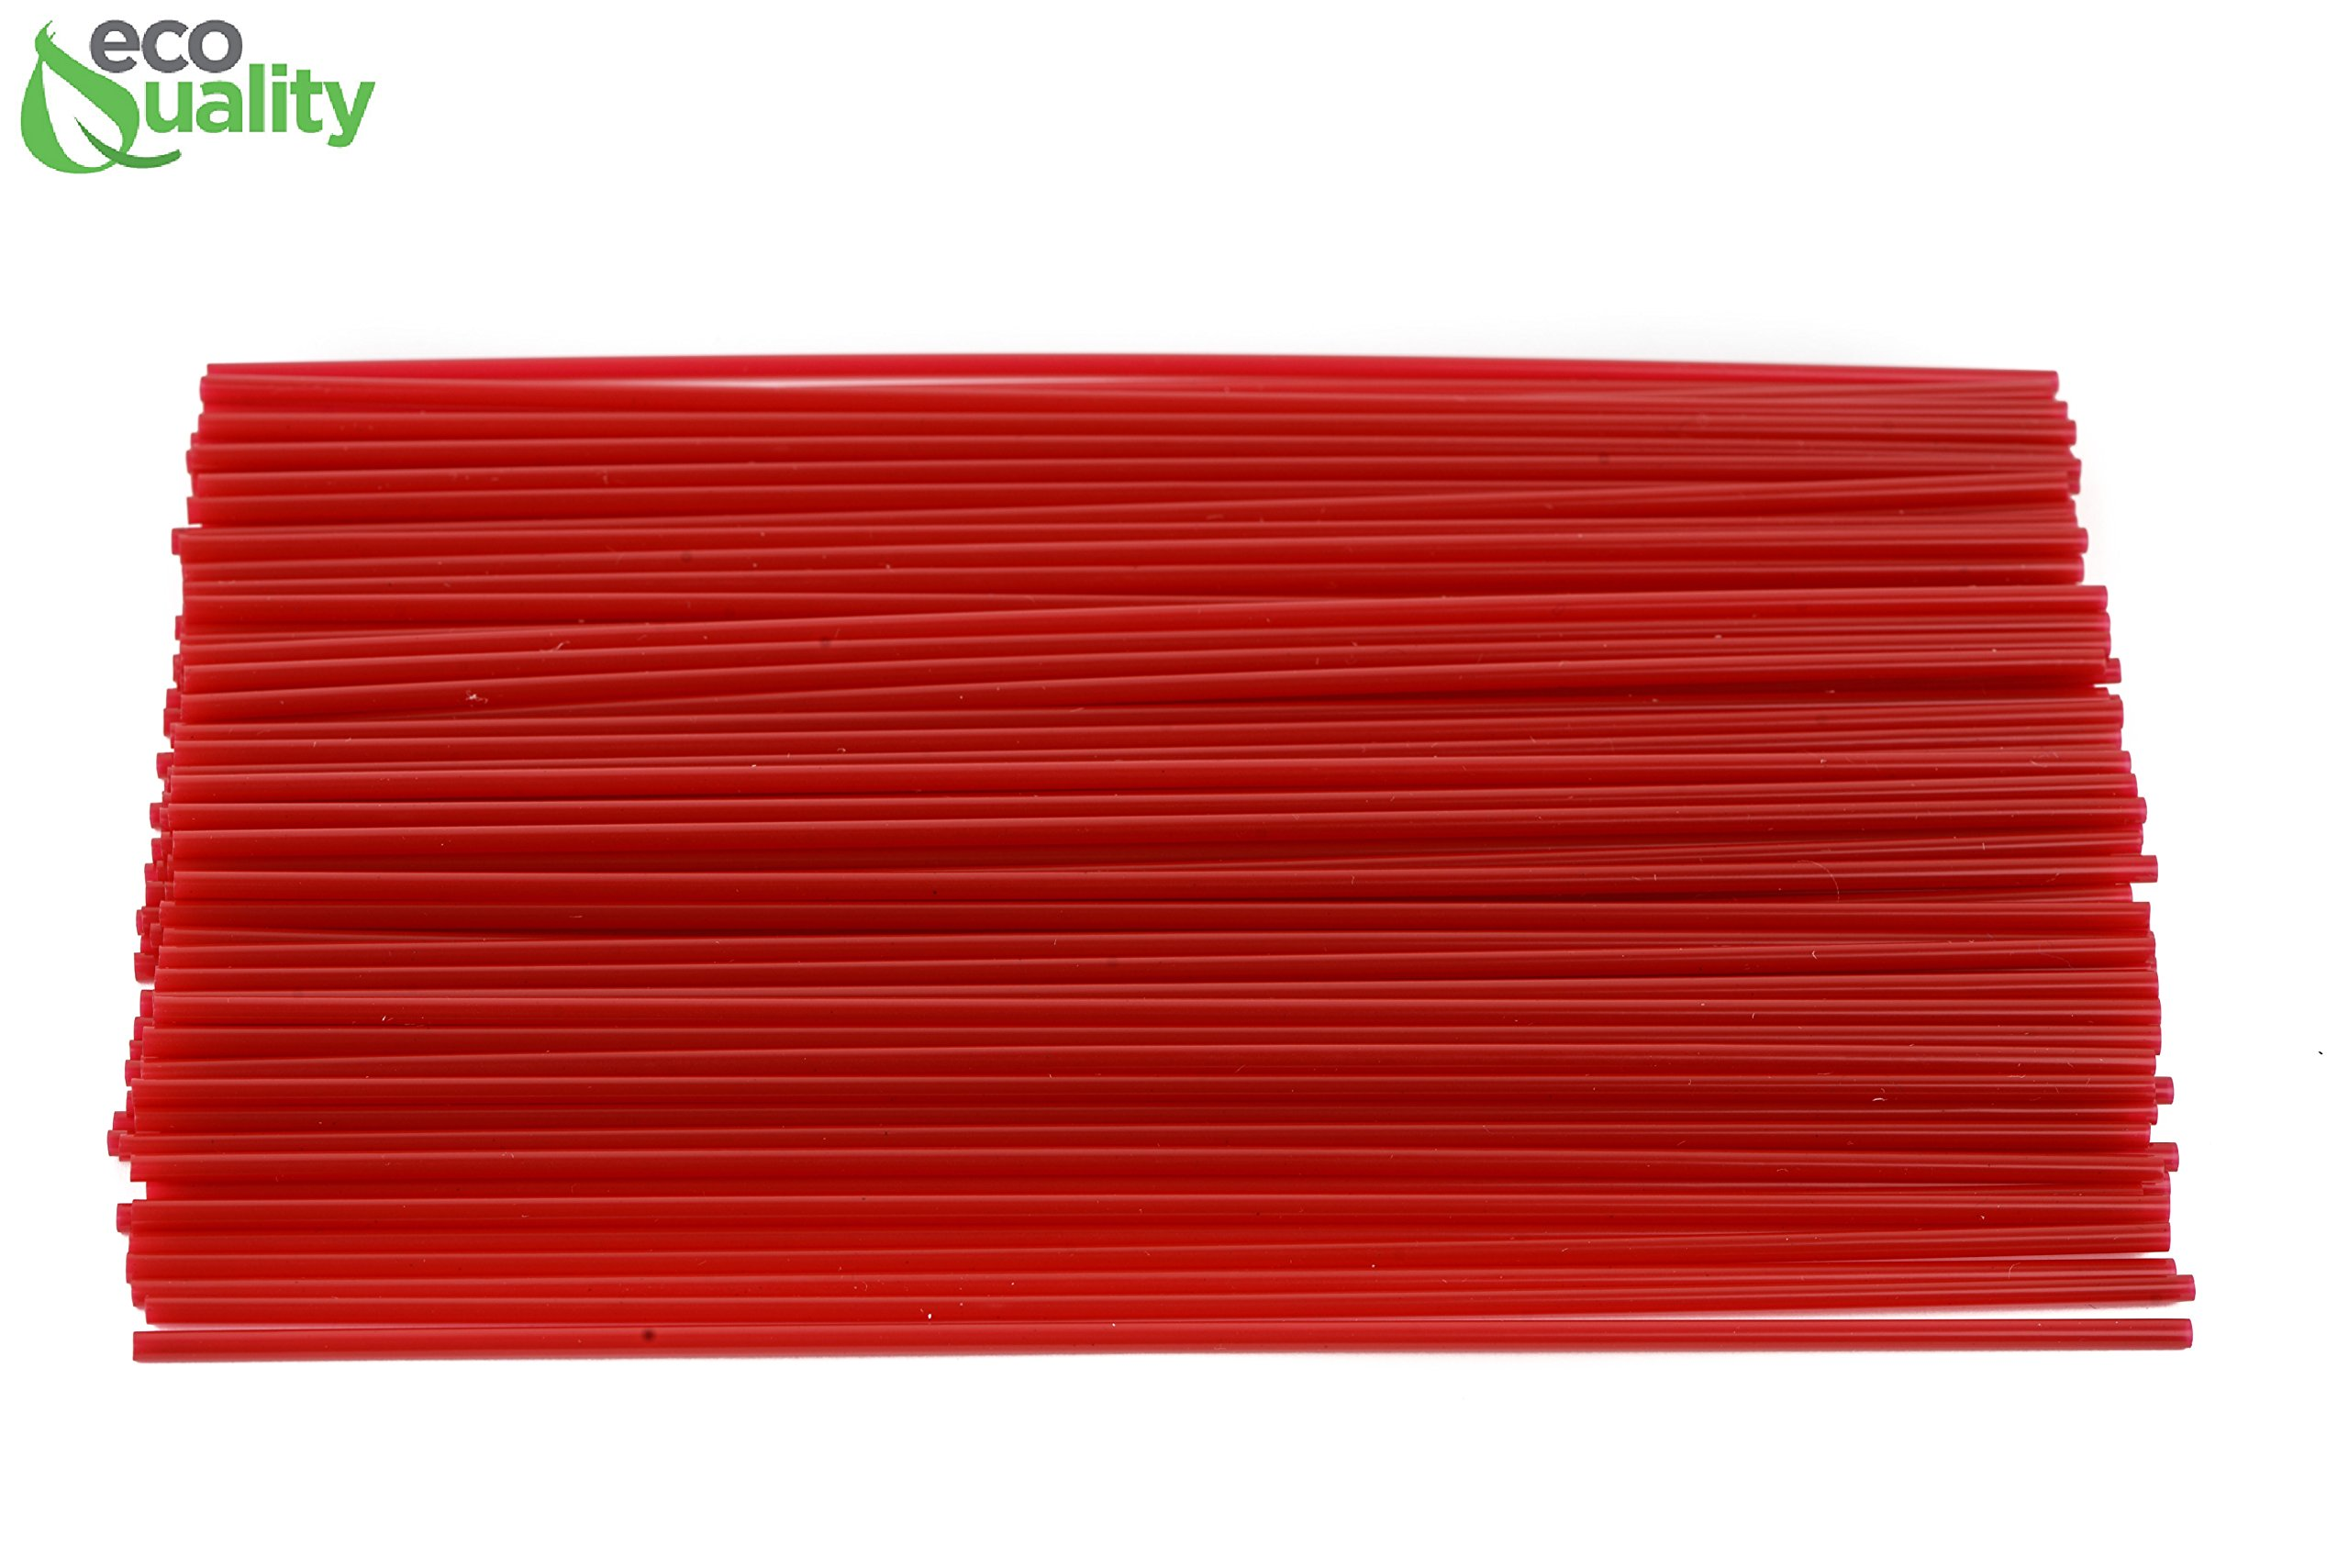 6000 Count Plastic Stirrer 8inch, Sip Stirrer, Sip Straw, For Coffee, Cocktail, Latte and Tea - 8 Inches, 1000/Box, Red